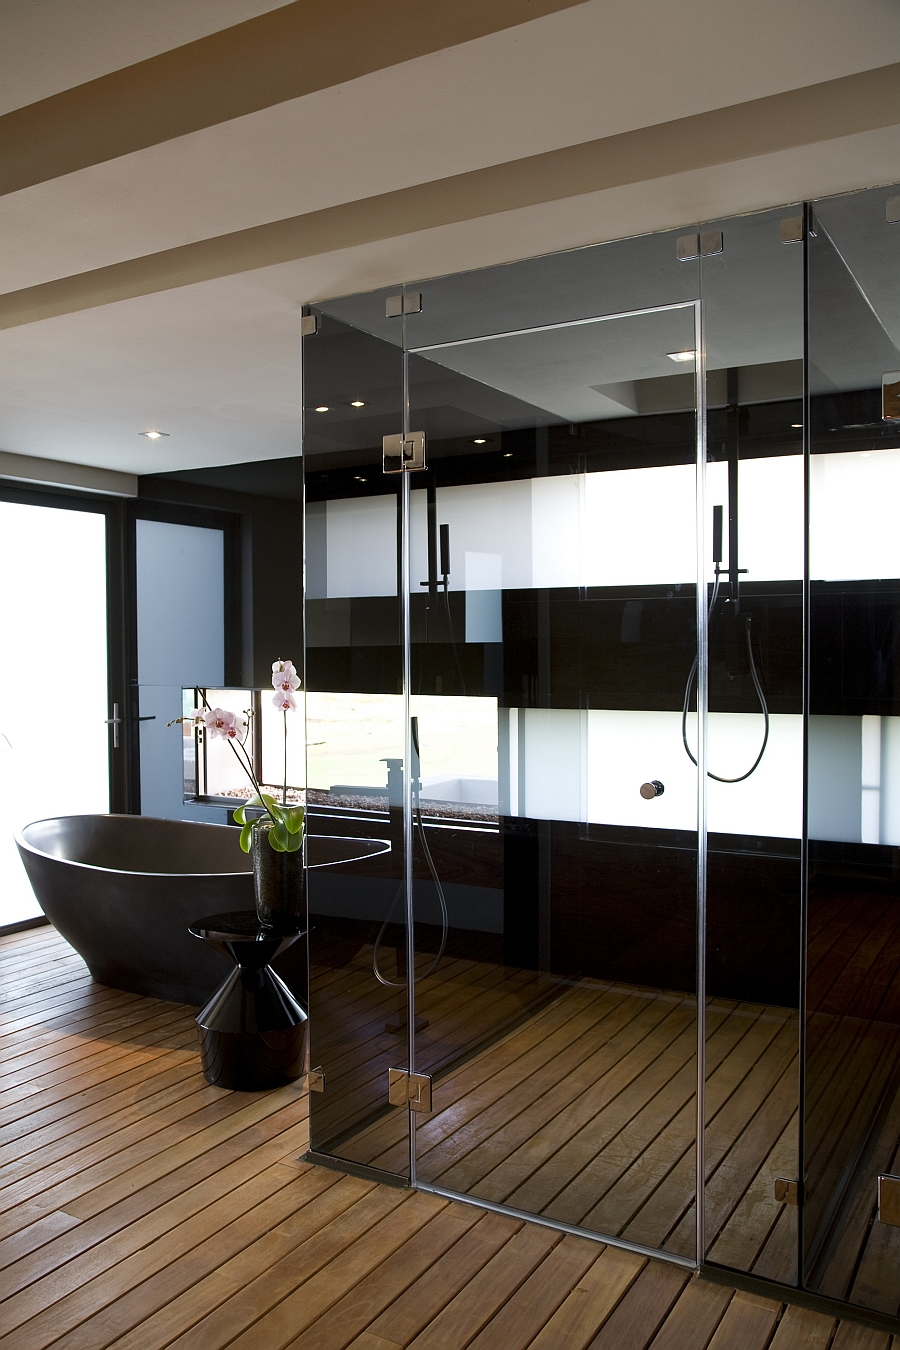 Exqusite bathroom with glass shower area